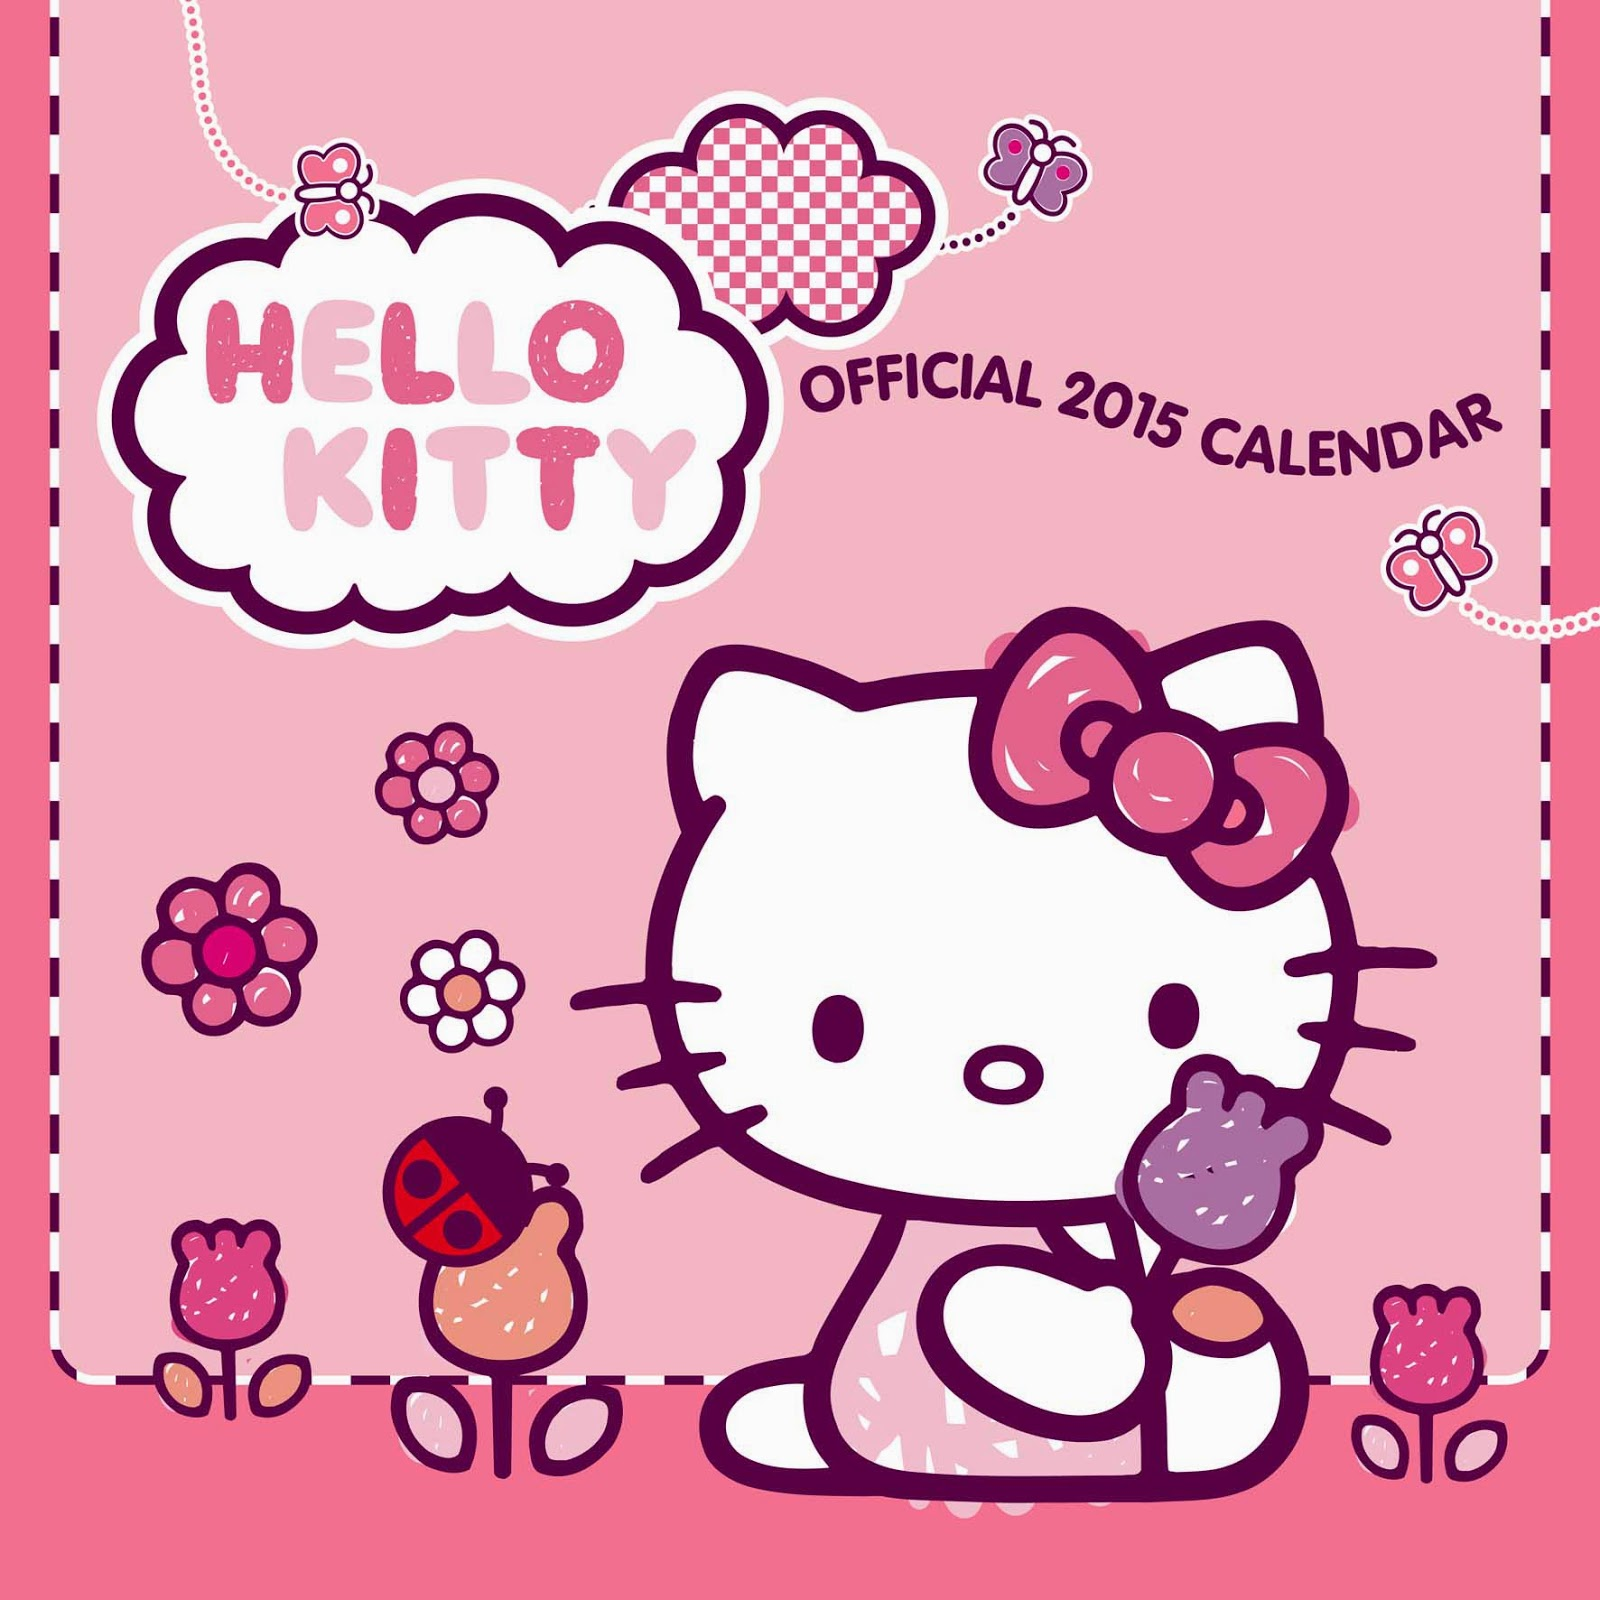 Gambar Hello Kitty 2015 Kalender Wallpaper Lucu HD